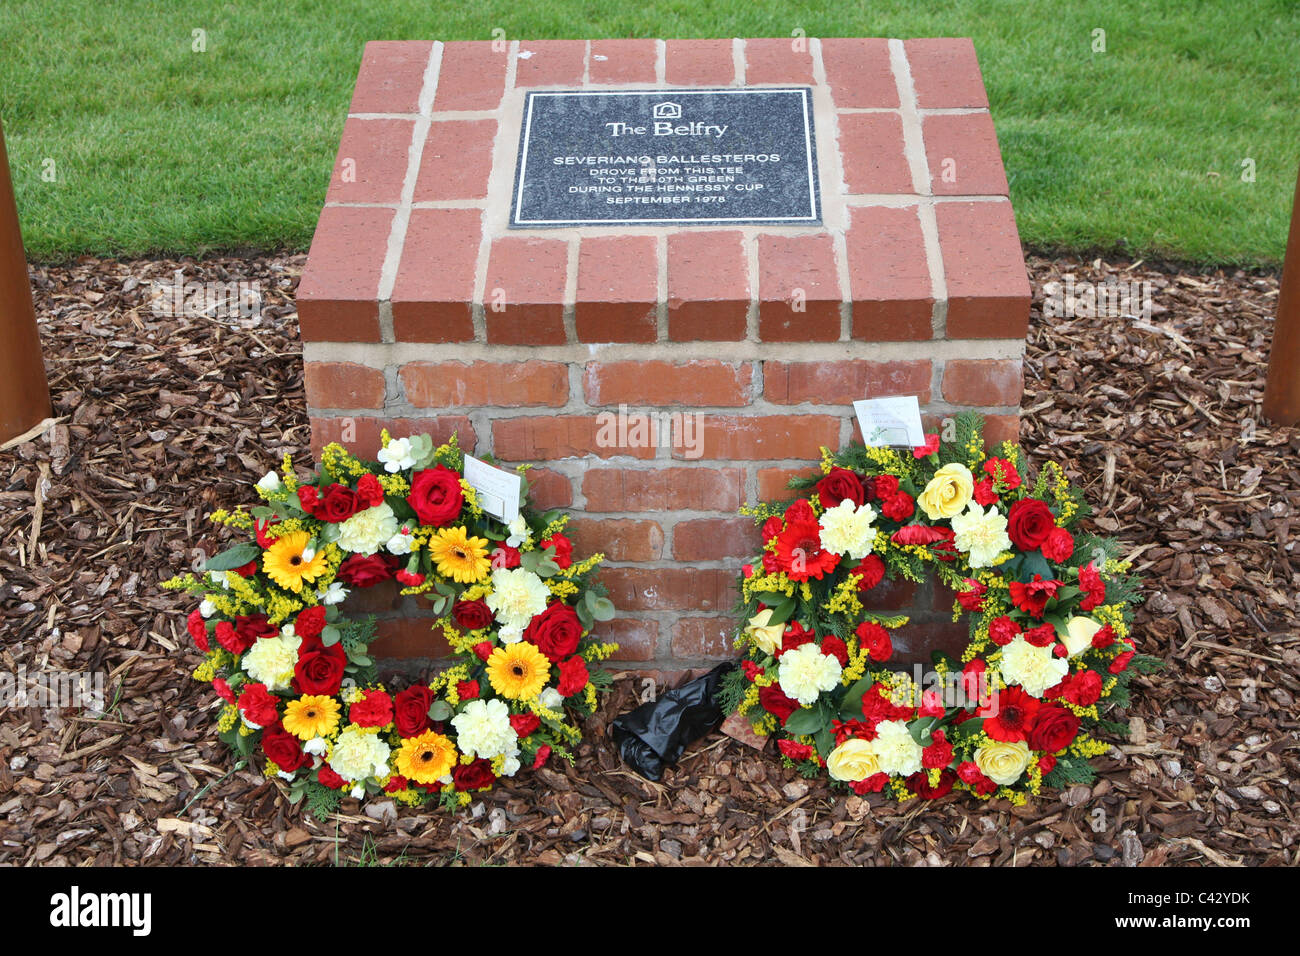 Tribute to Severiano Ballasteros at The Belfry, Sutton Coldfield - Stock Image